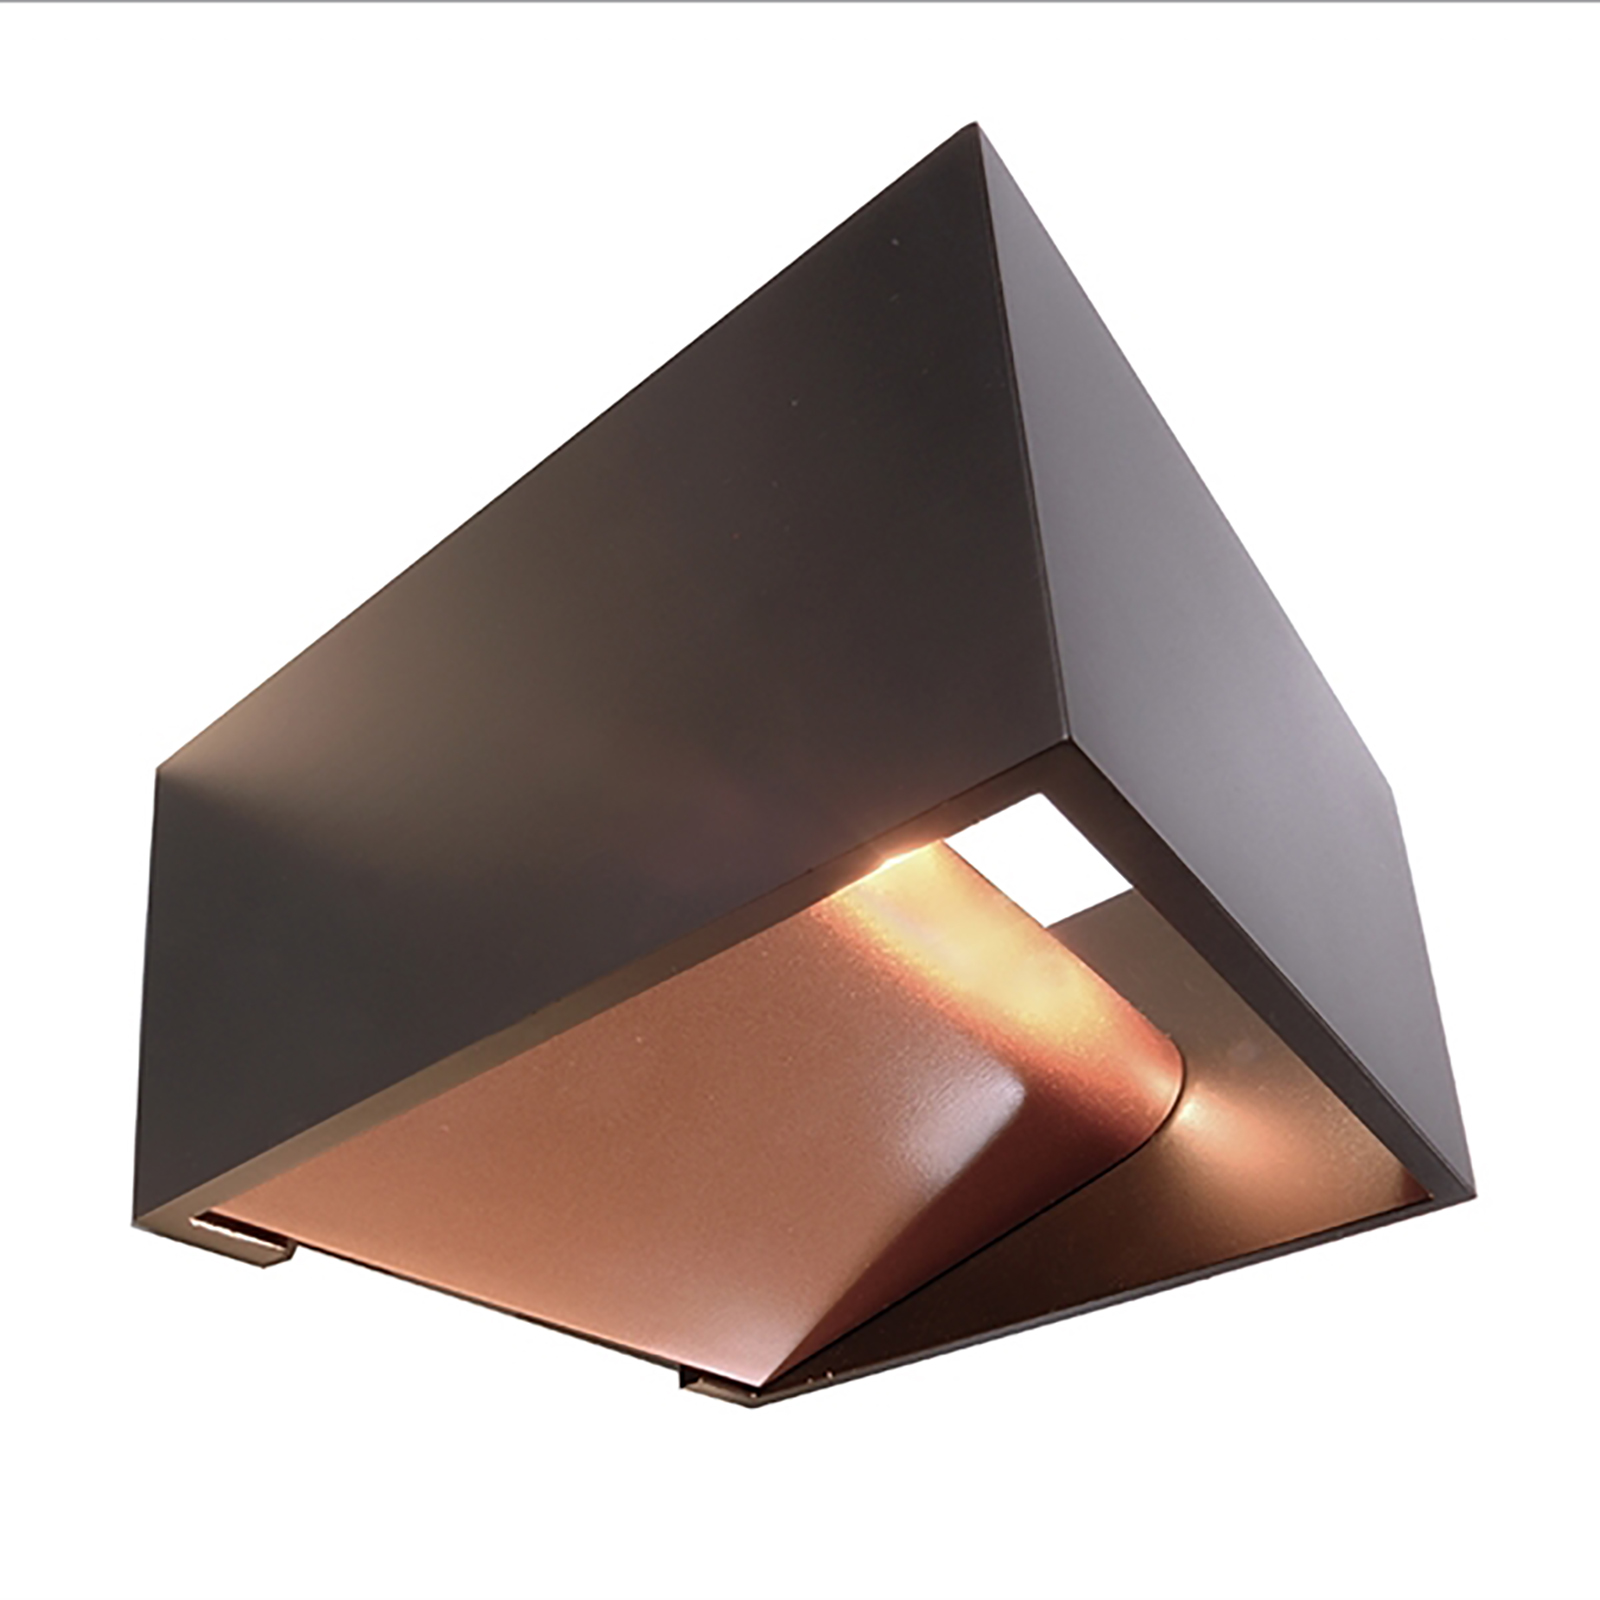 Applique wall 5W LED lamp square double vertical light 3000K 220V IP20